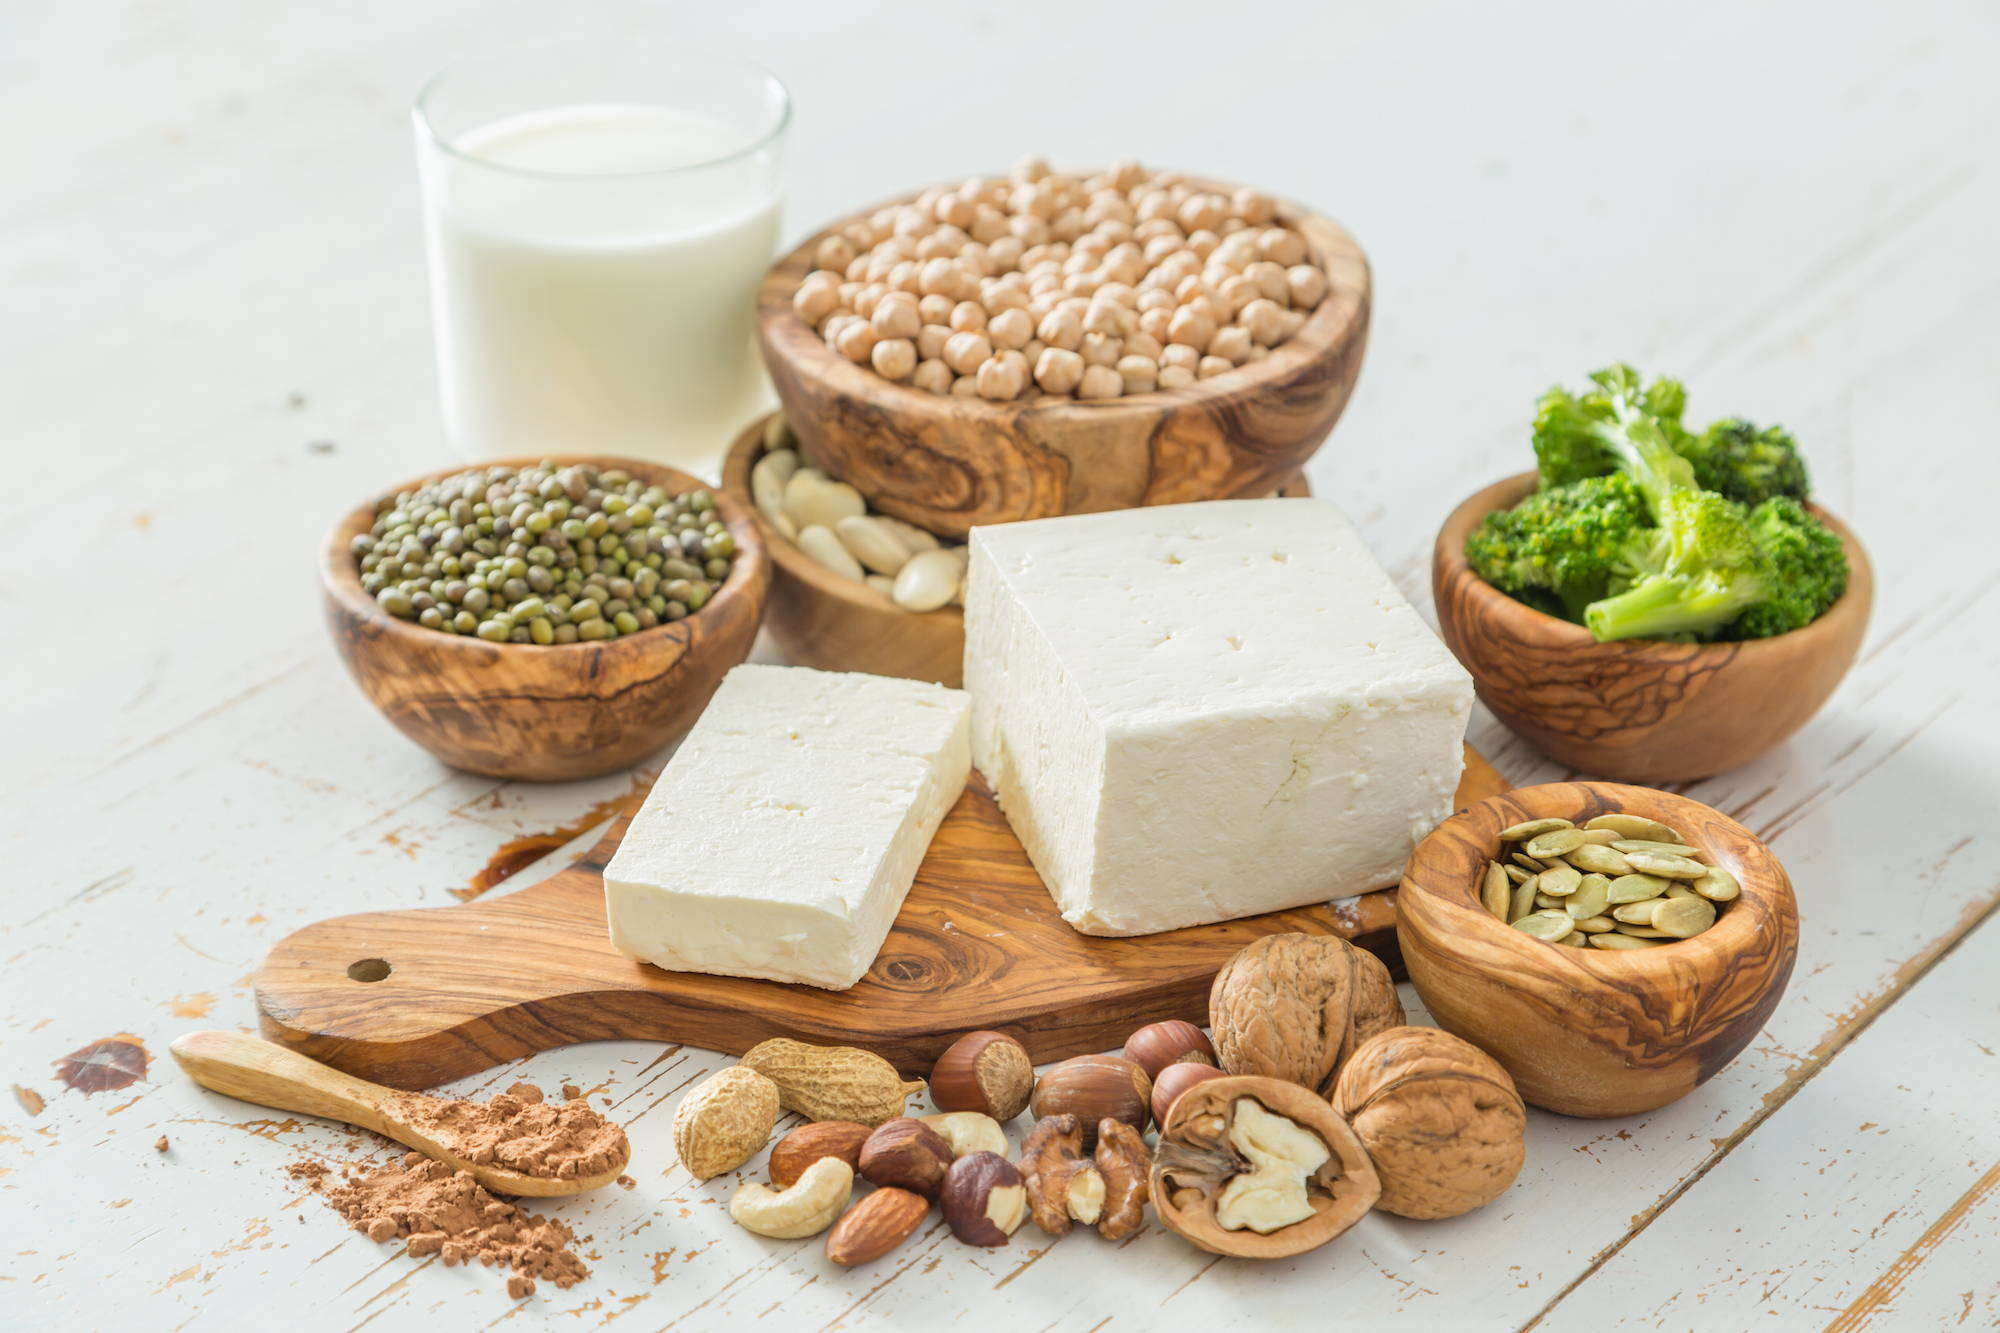 Tofu is a source of tyrosine to support an underactive thyroid